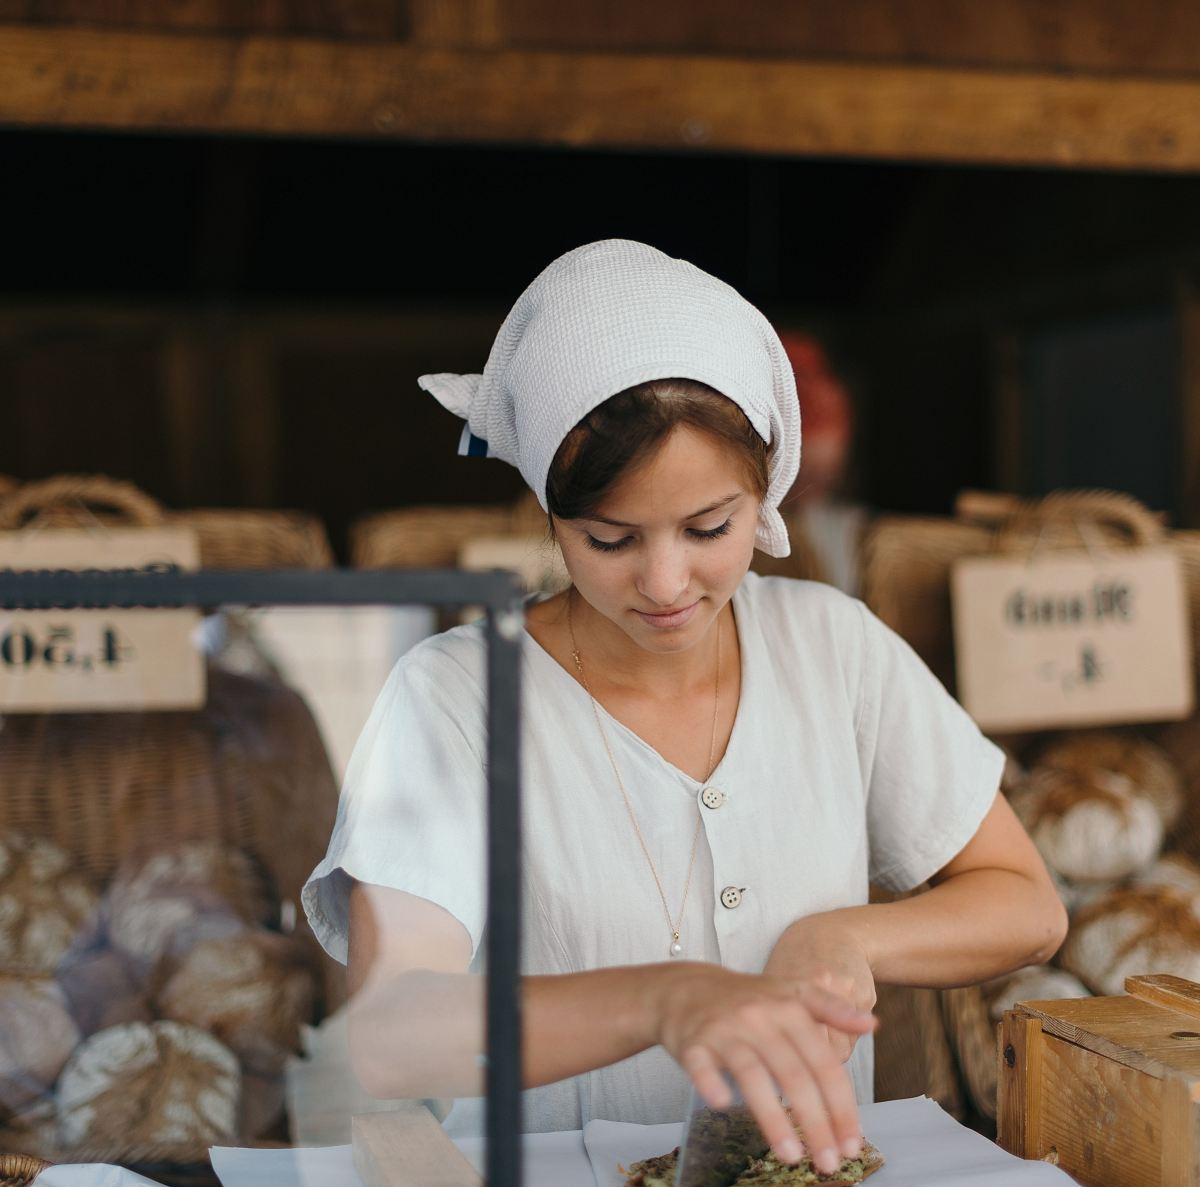 stock photos free  of woman slicing bread